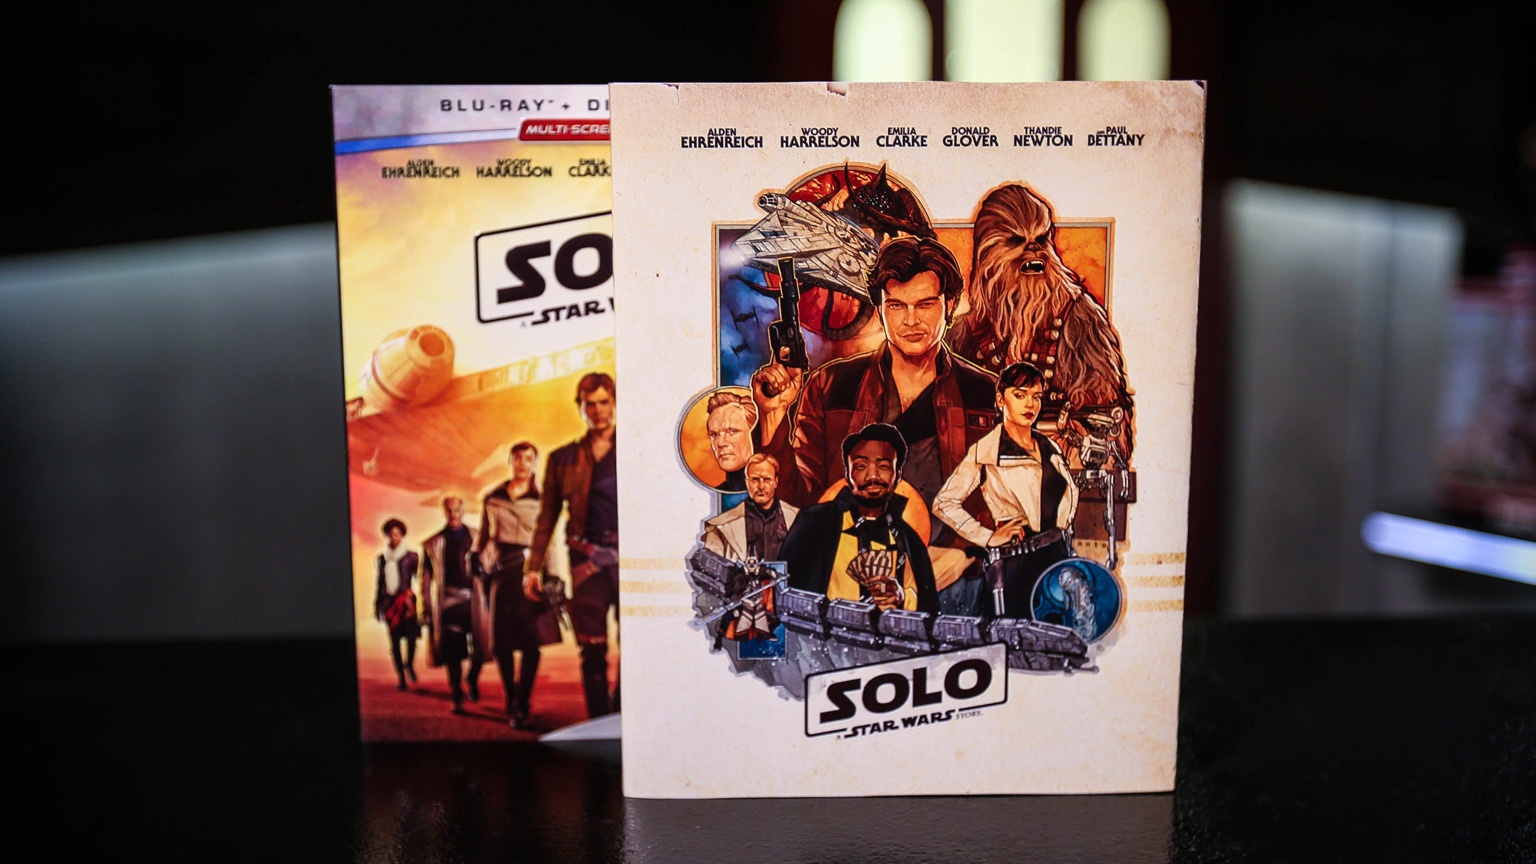 Make A Special Modification To Your Solo: A Star Wars Story Blu-Ray - Free Printable Blu Ray Covers